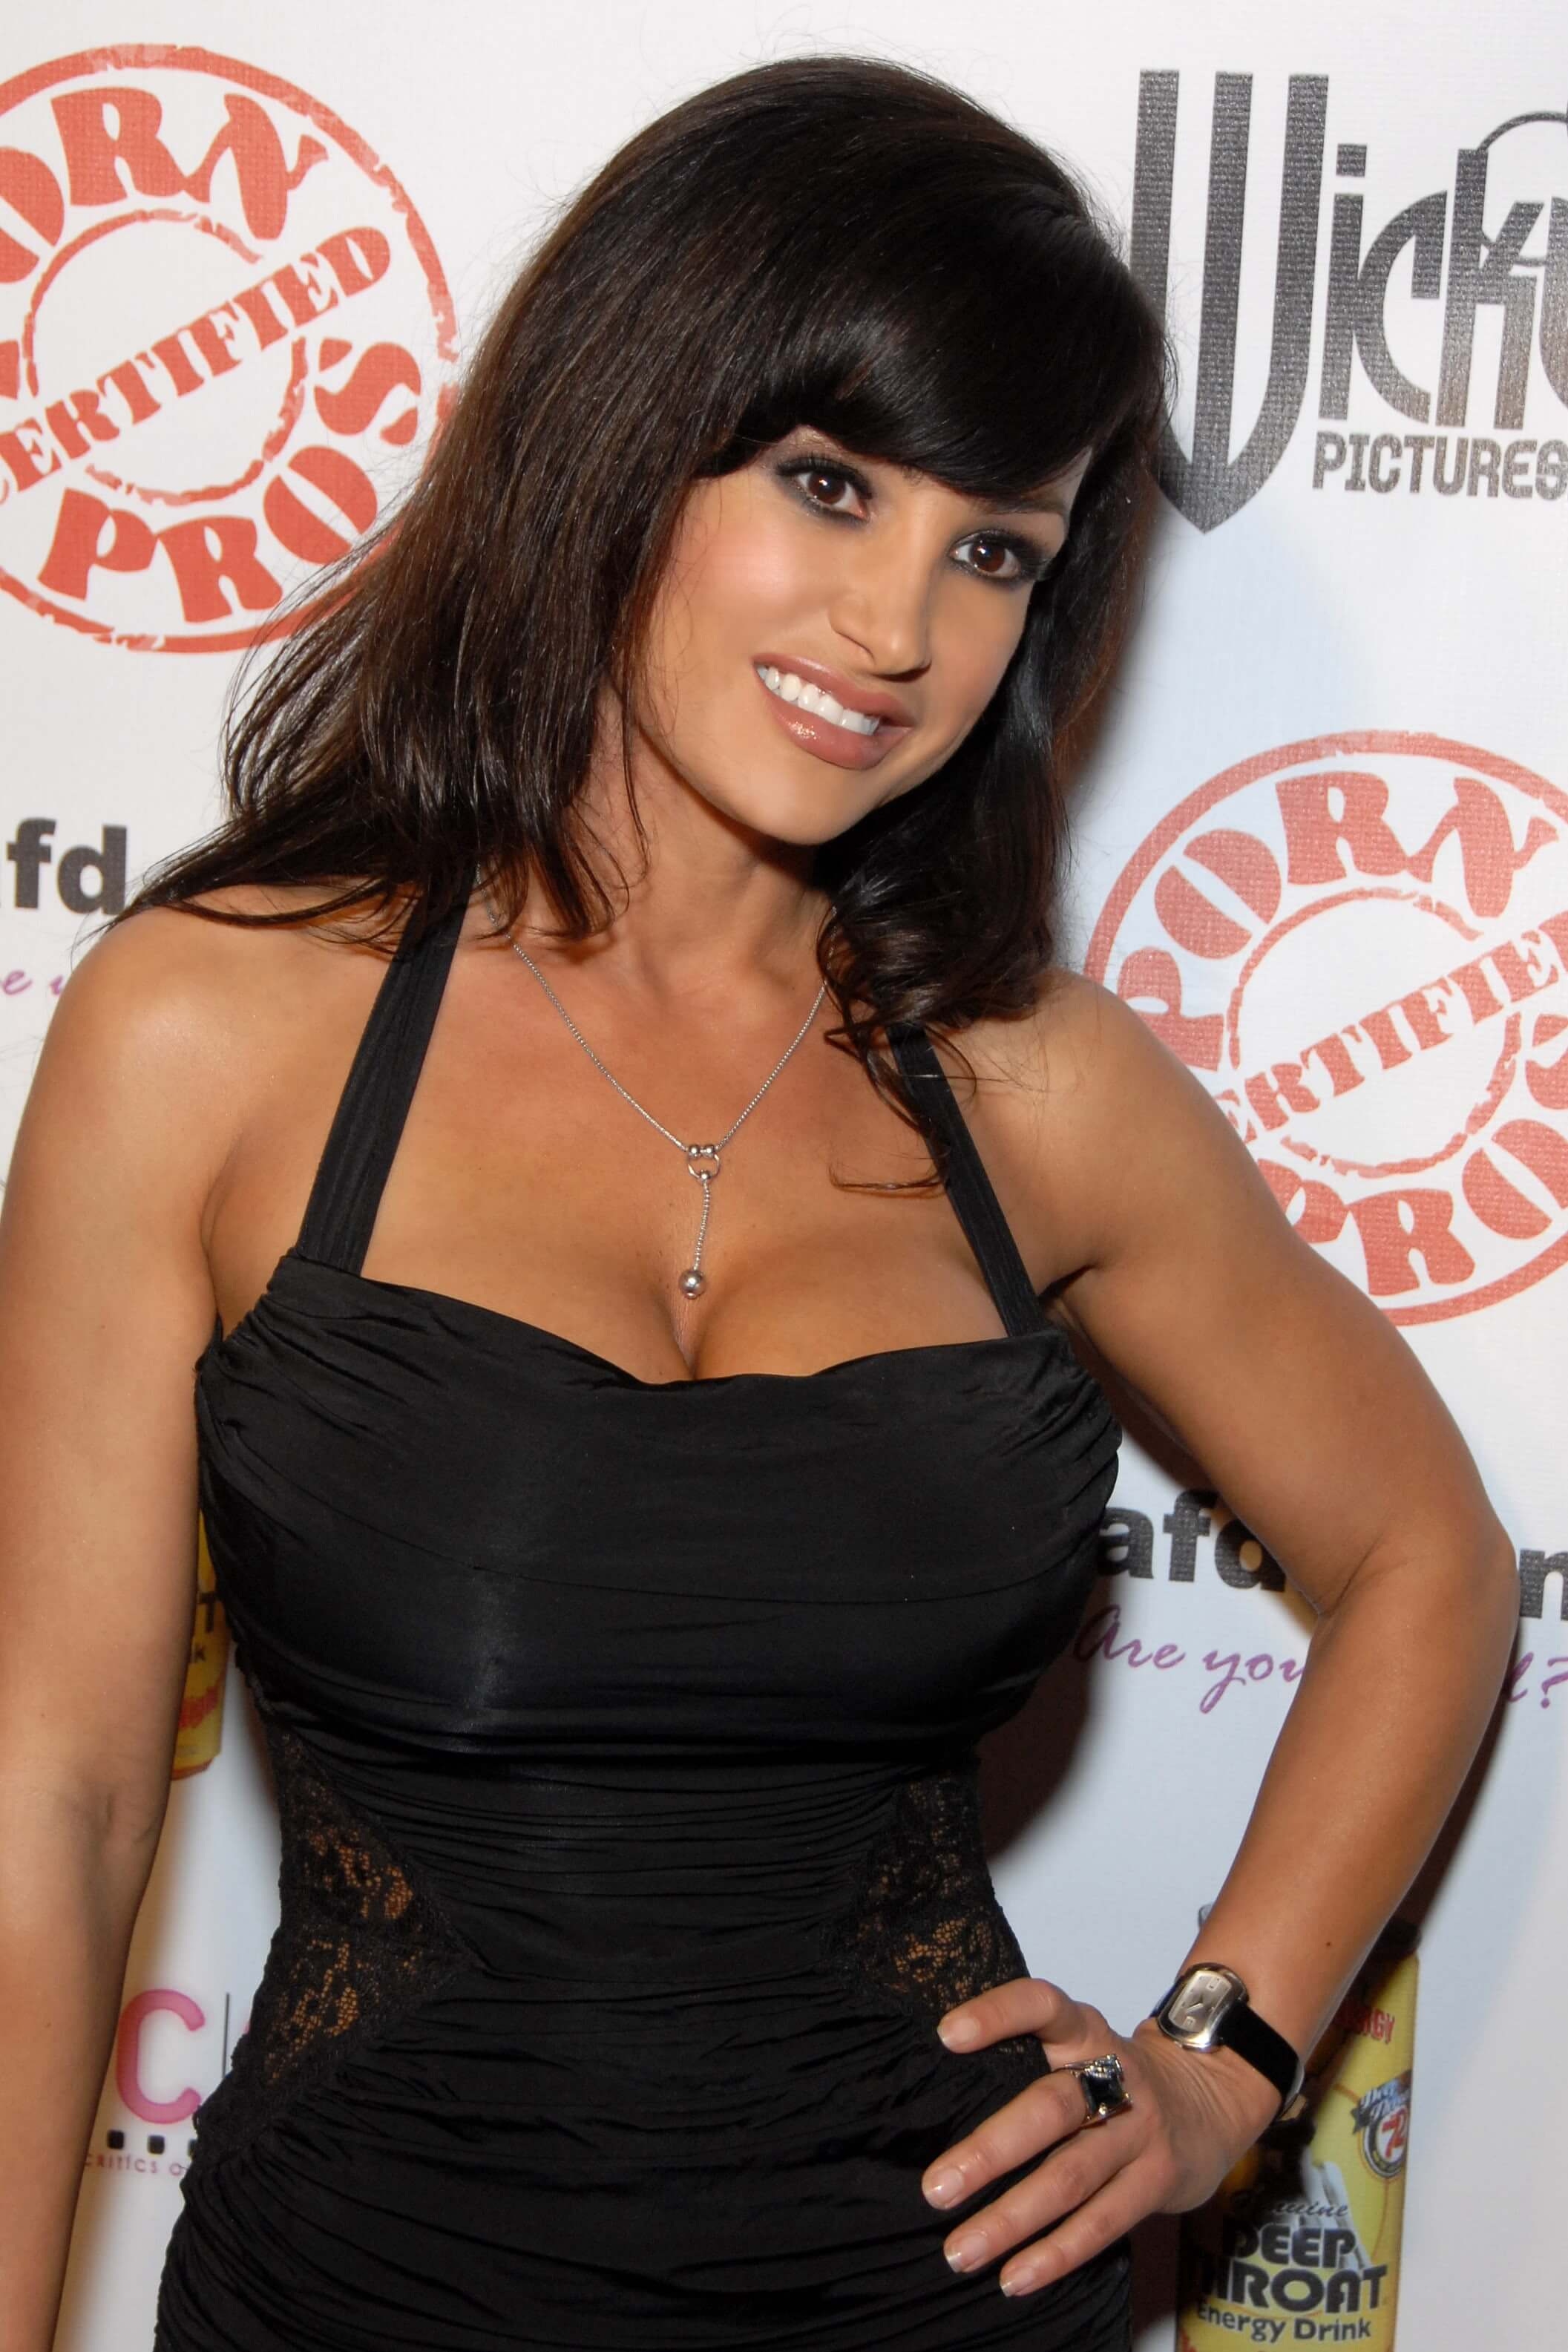 Lisa Ann iphone Wallpaper 2